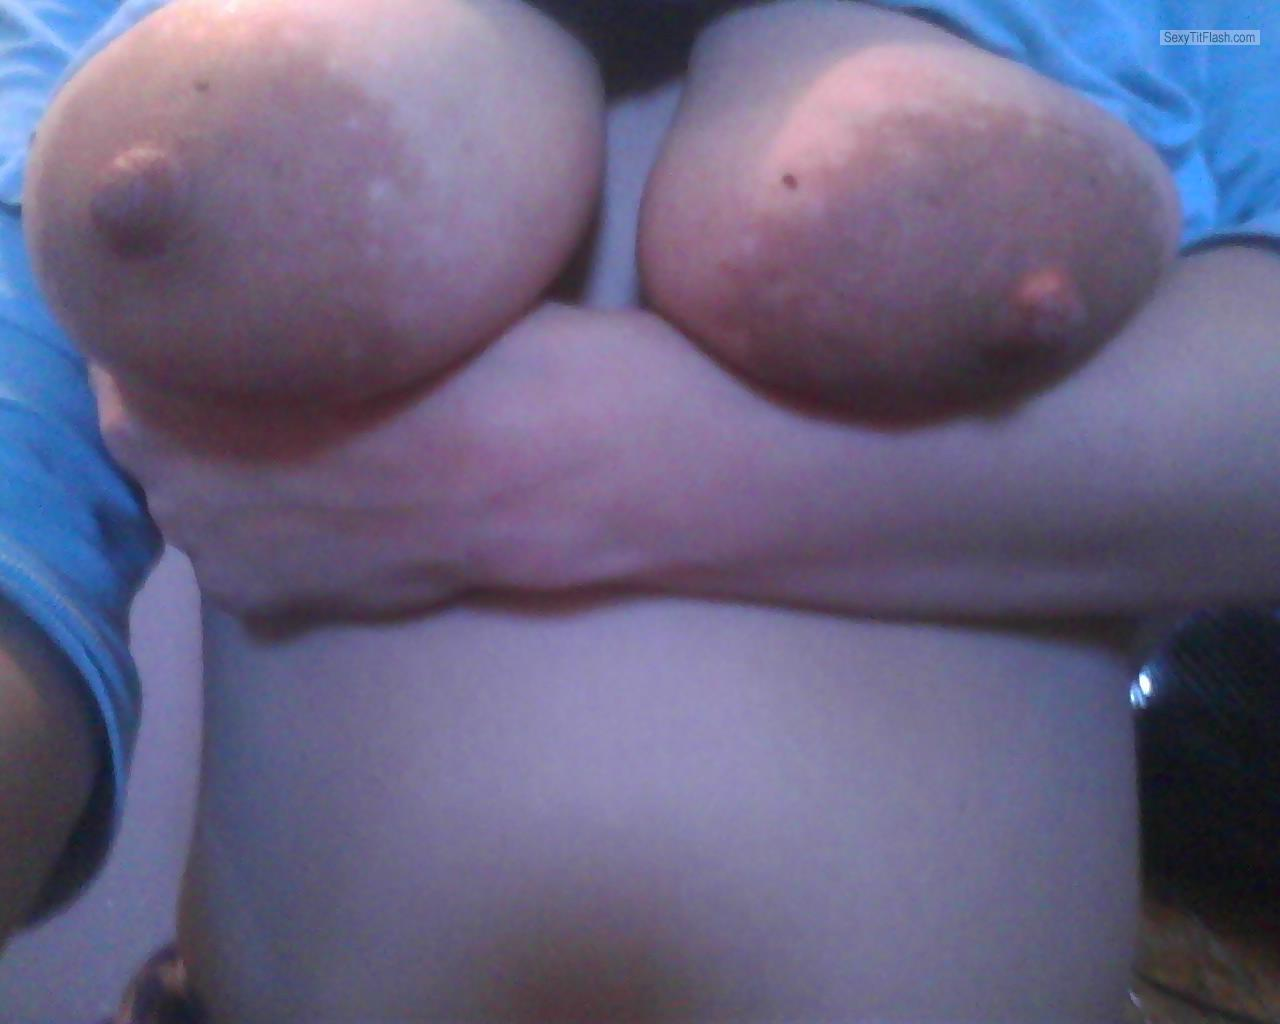 My Big Tits Selfie by Michele